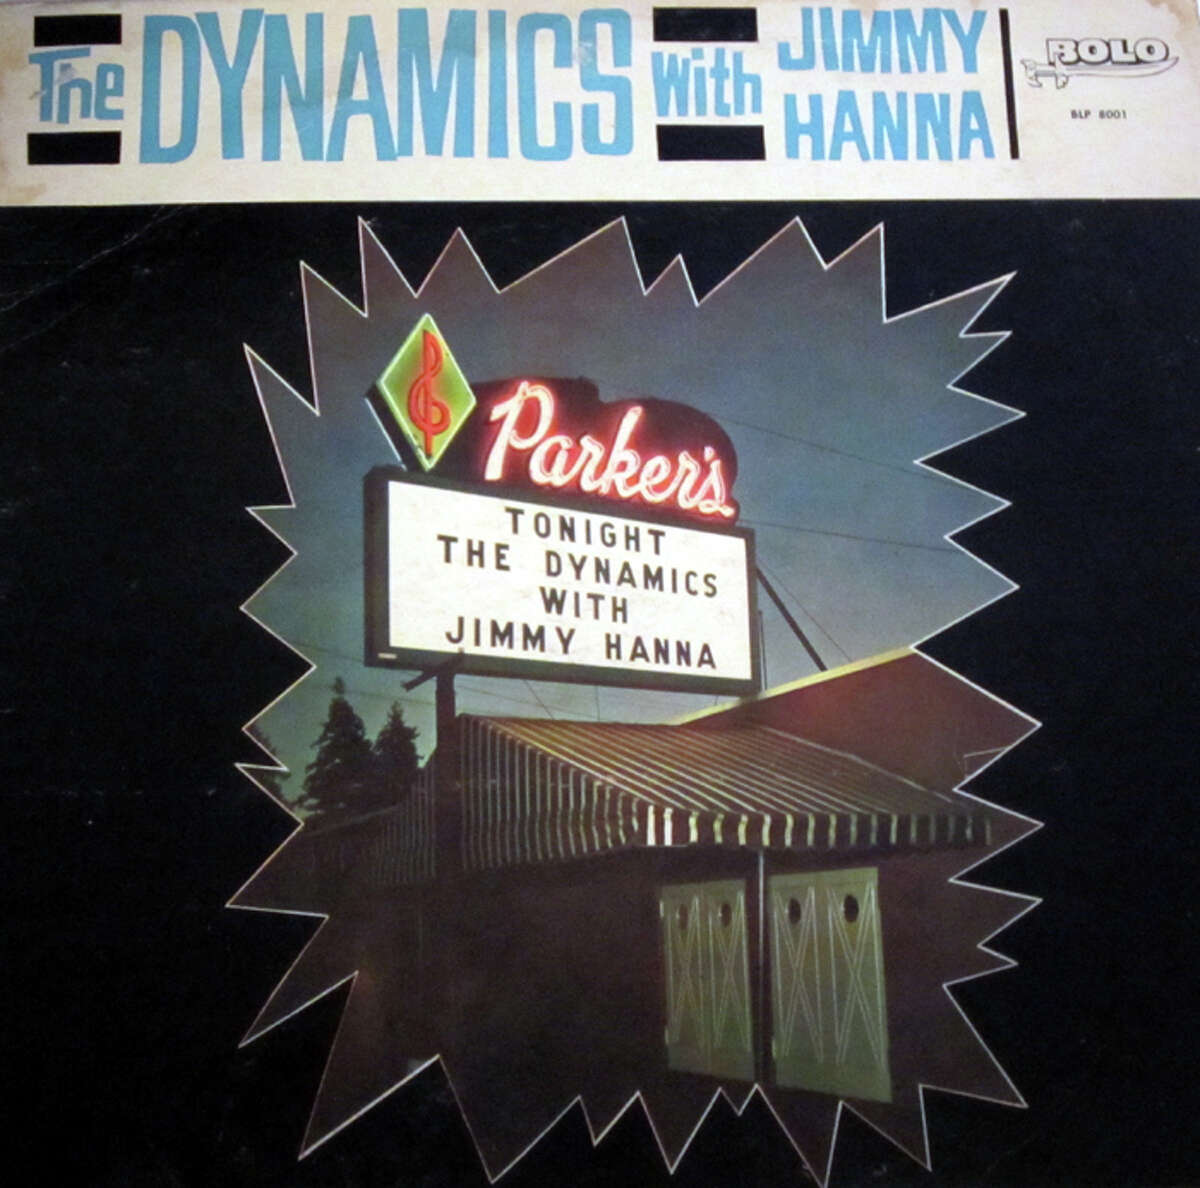 The front cover of The Dynamics 1964 album recorded in part at Parker's Ballroom north of Seattle. The dance hall, which opened in 1930, was demolished in Nov. 2012.